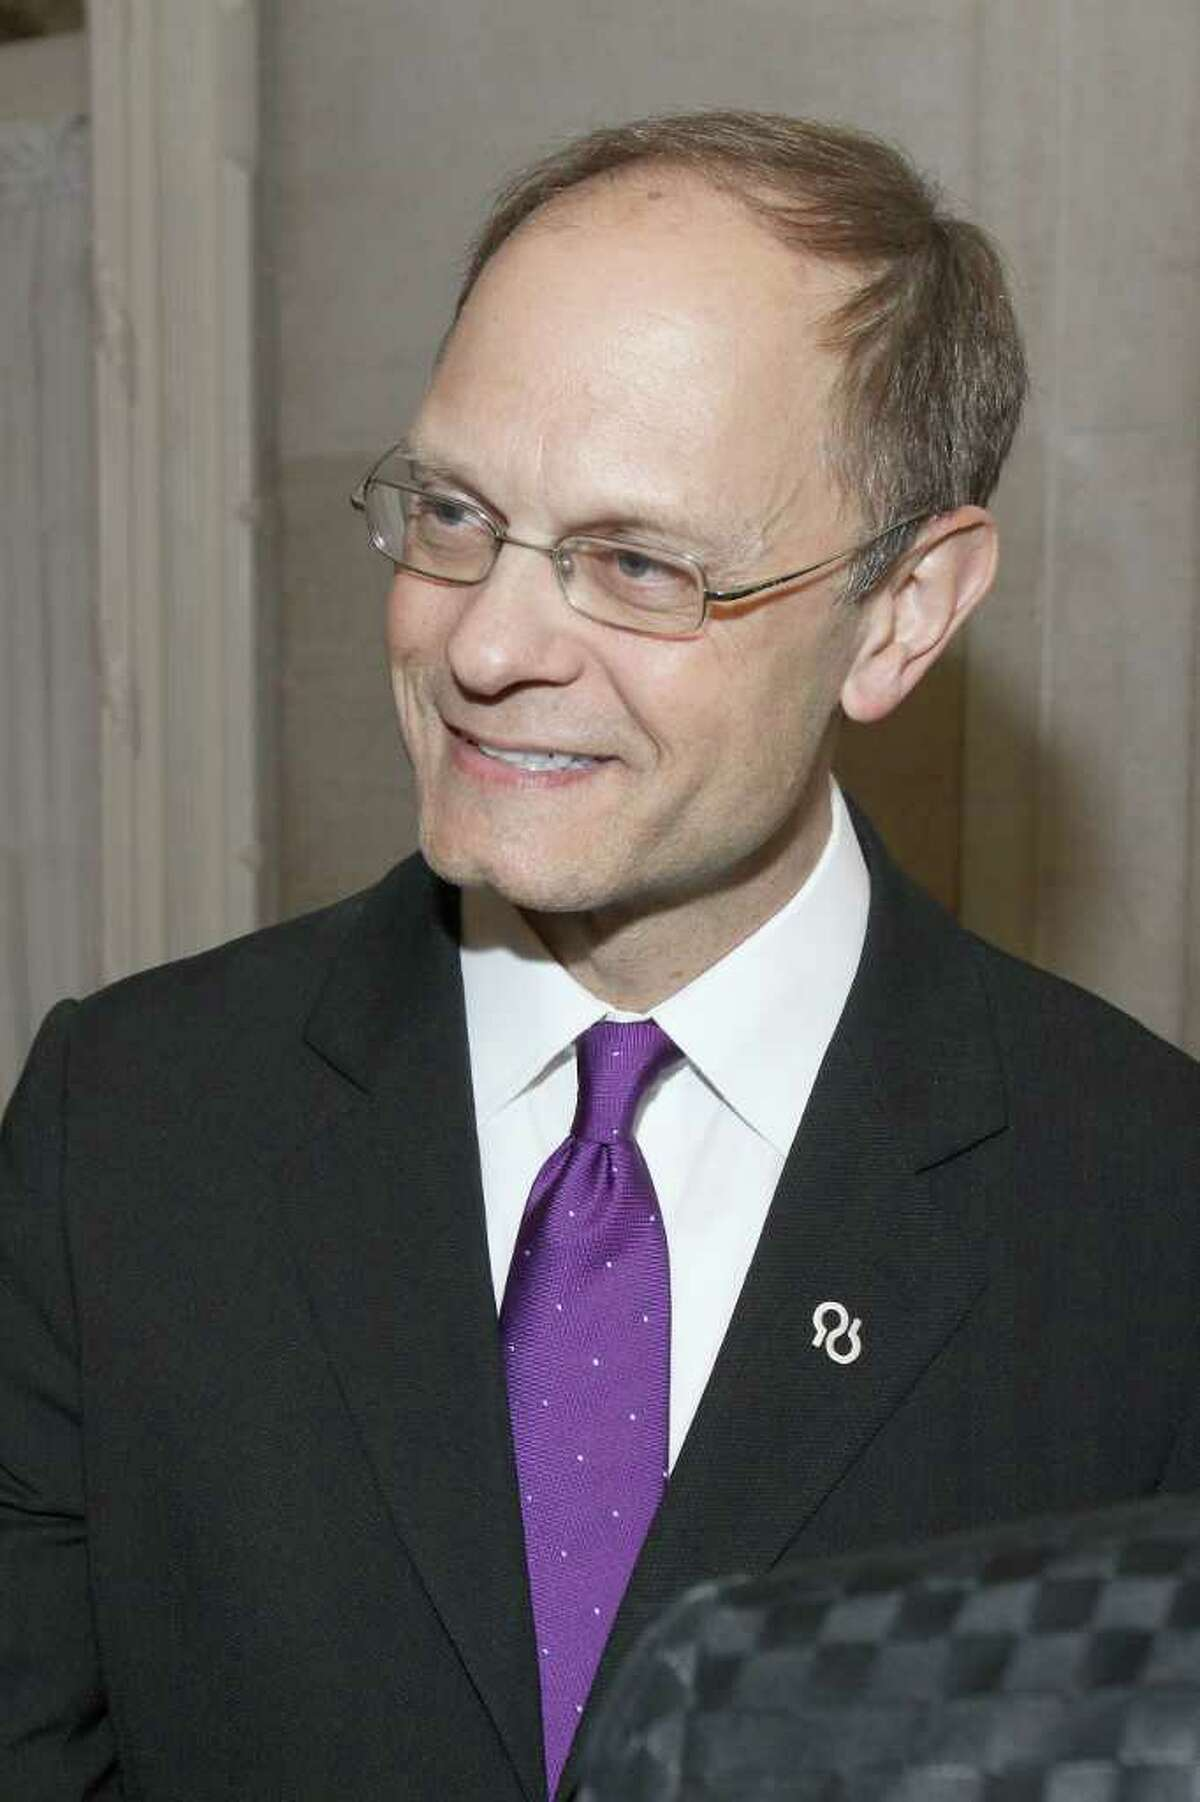 Guest celebrity host and honorary national board member David Hyde Pierce during Through the Looking Glass: An Evening to End Alzheimer's, a gala to benefit the Alzheimer's Association of Northeastern New York in Saratoga Springs on May 5, 2011. (Photo by Joe Putrock / Special to the Times Union)